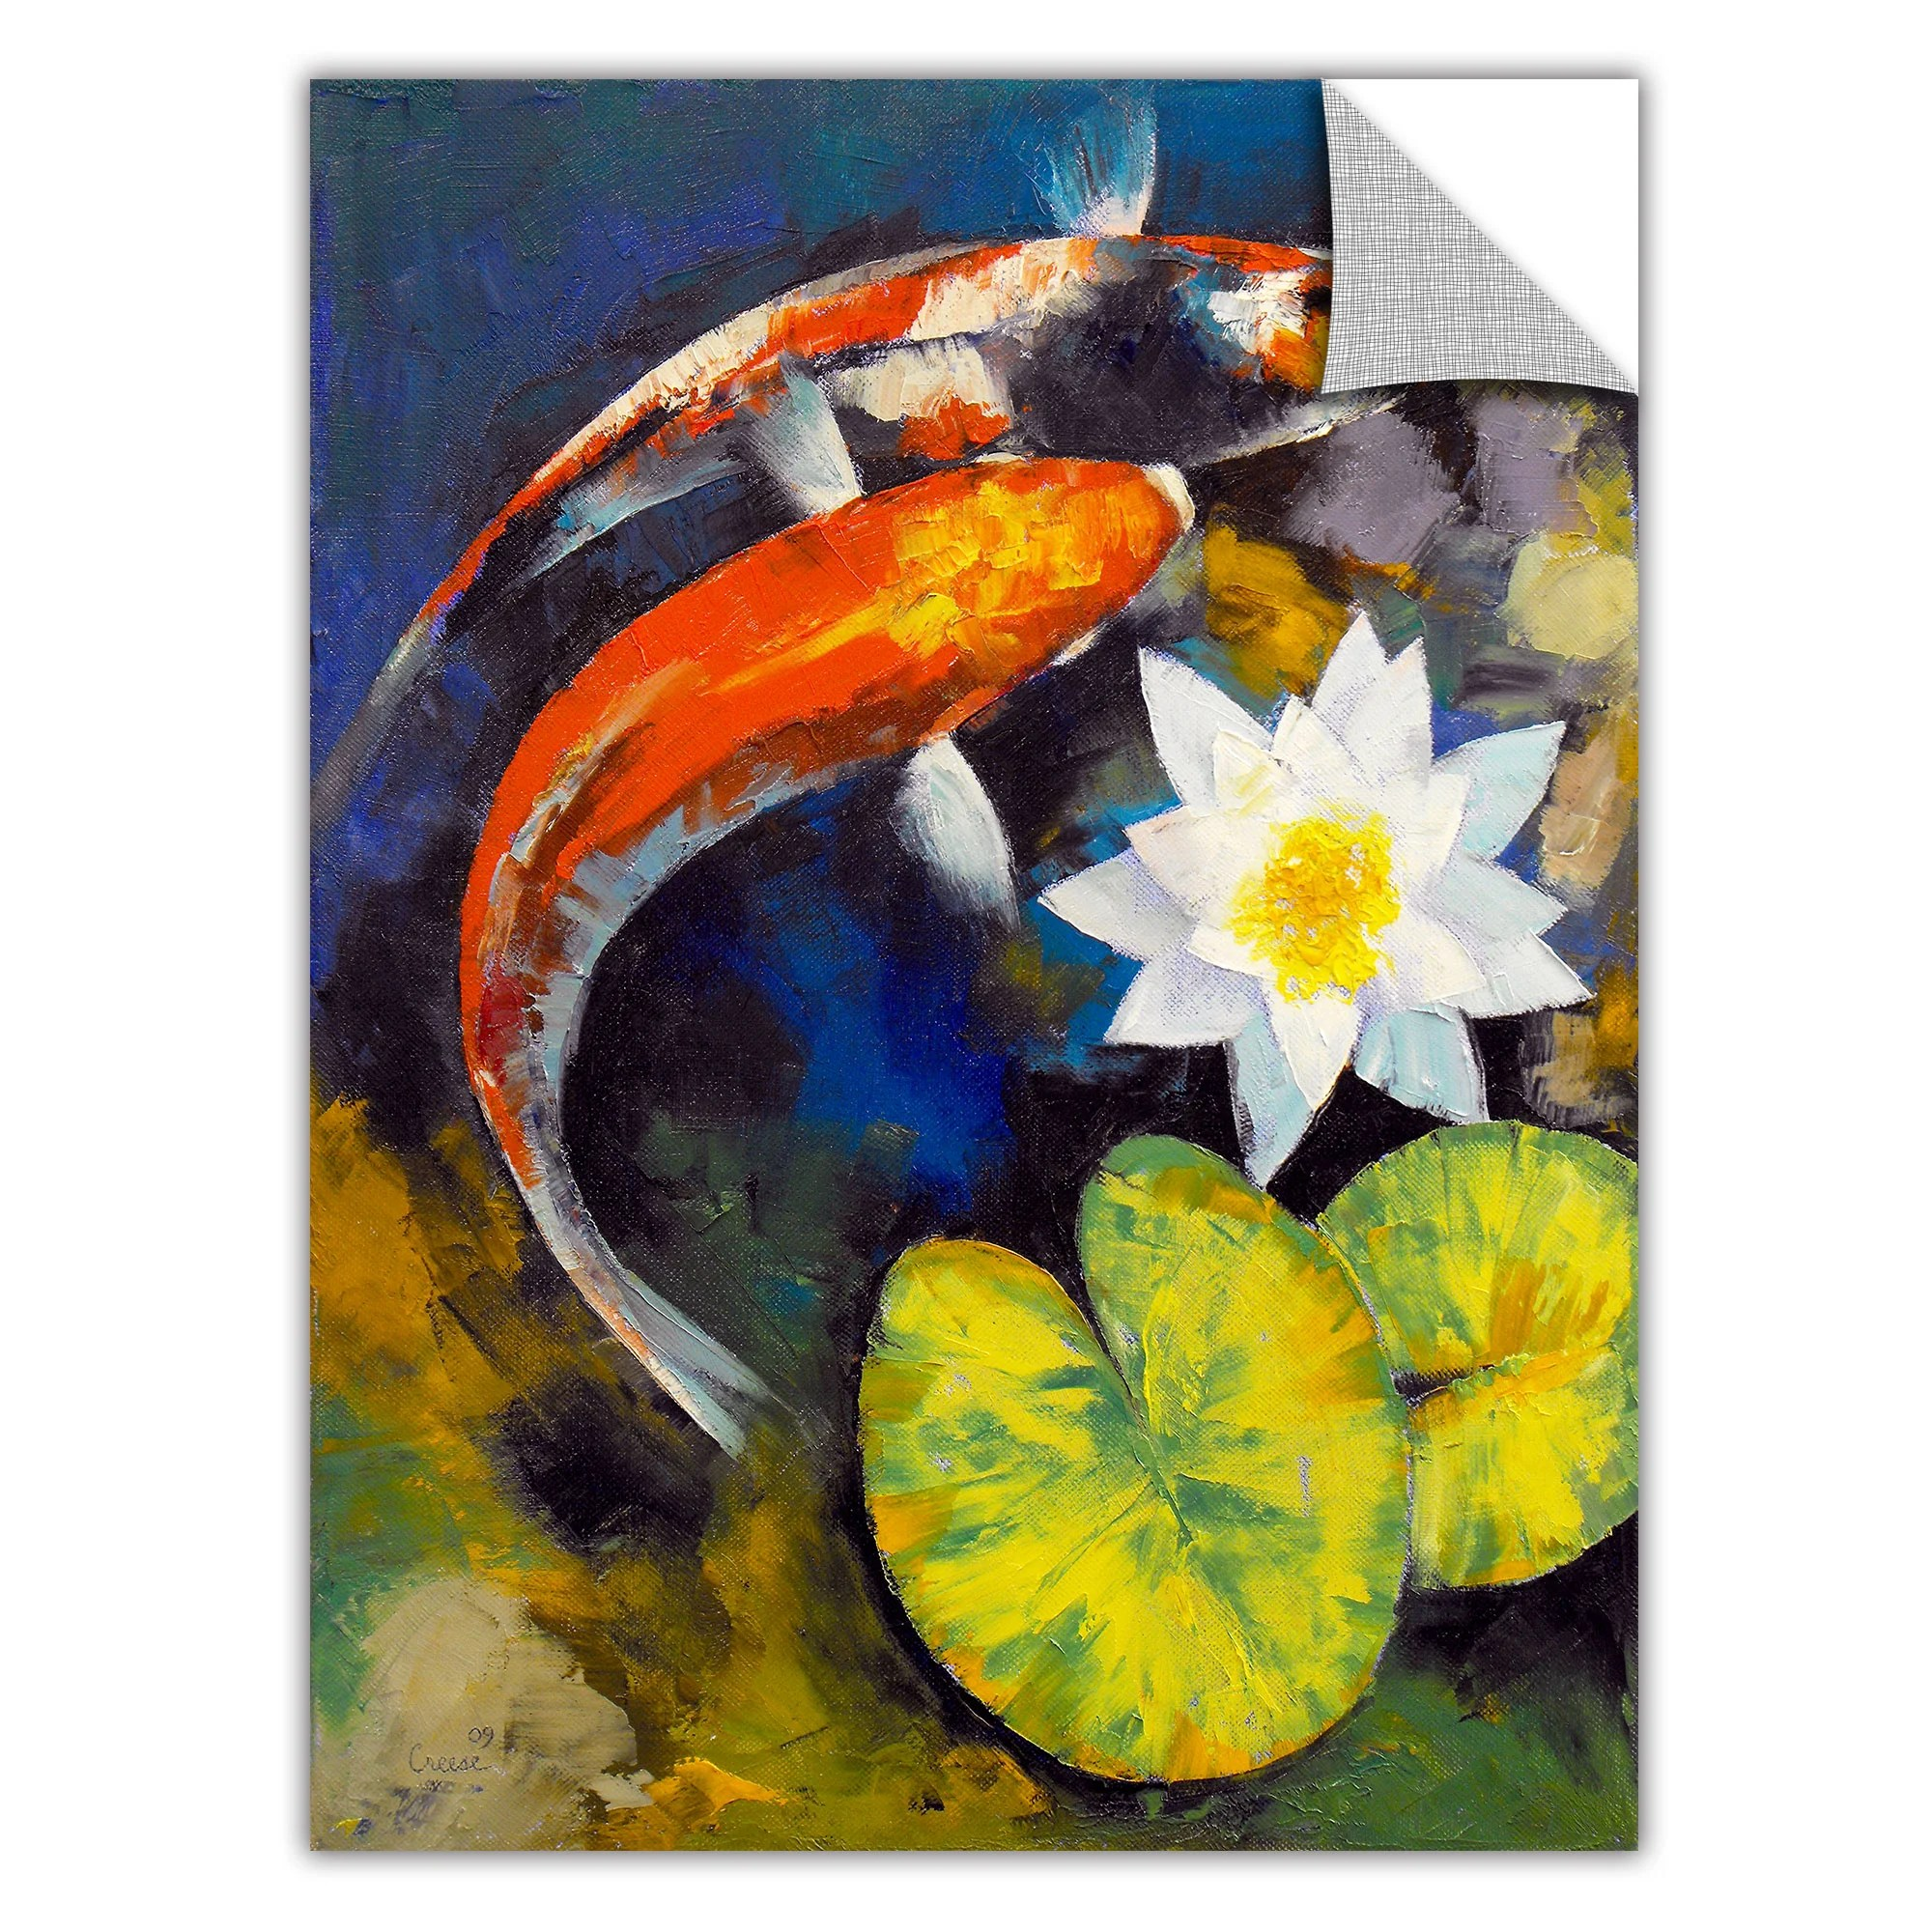 Large Vertical Paintings Artwall Artapeelz 39koi Fish And Water Lily 39 By Michael